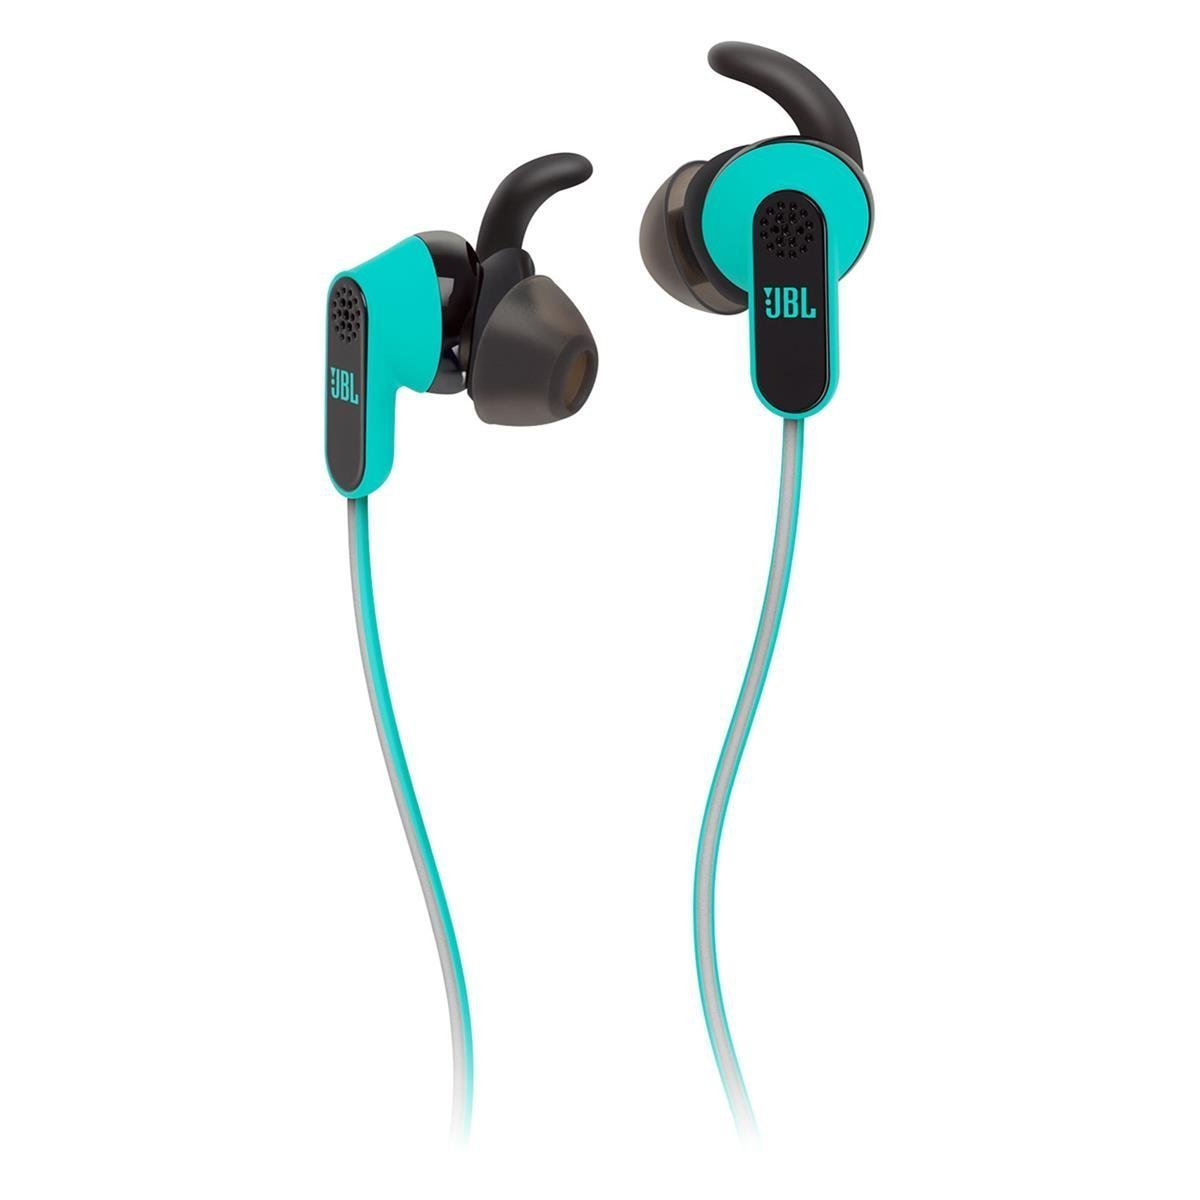 Image for JBL Reflect Aware in-ear sport headphones with lightning - Teal from Circuit City